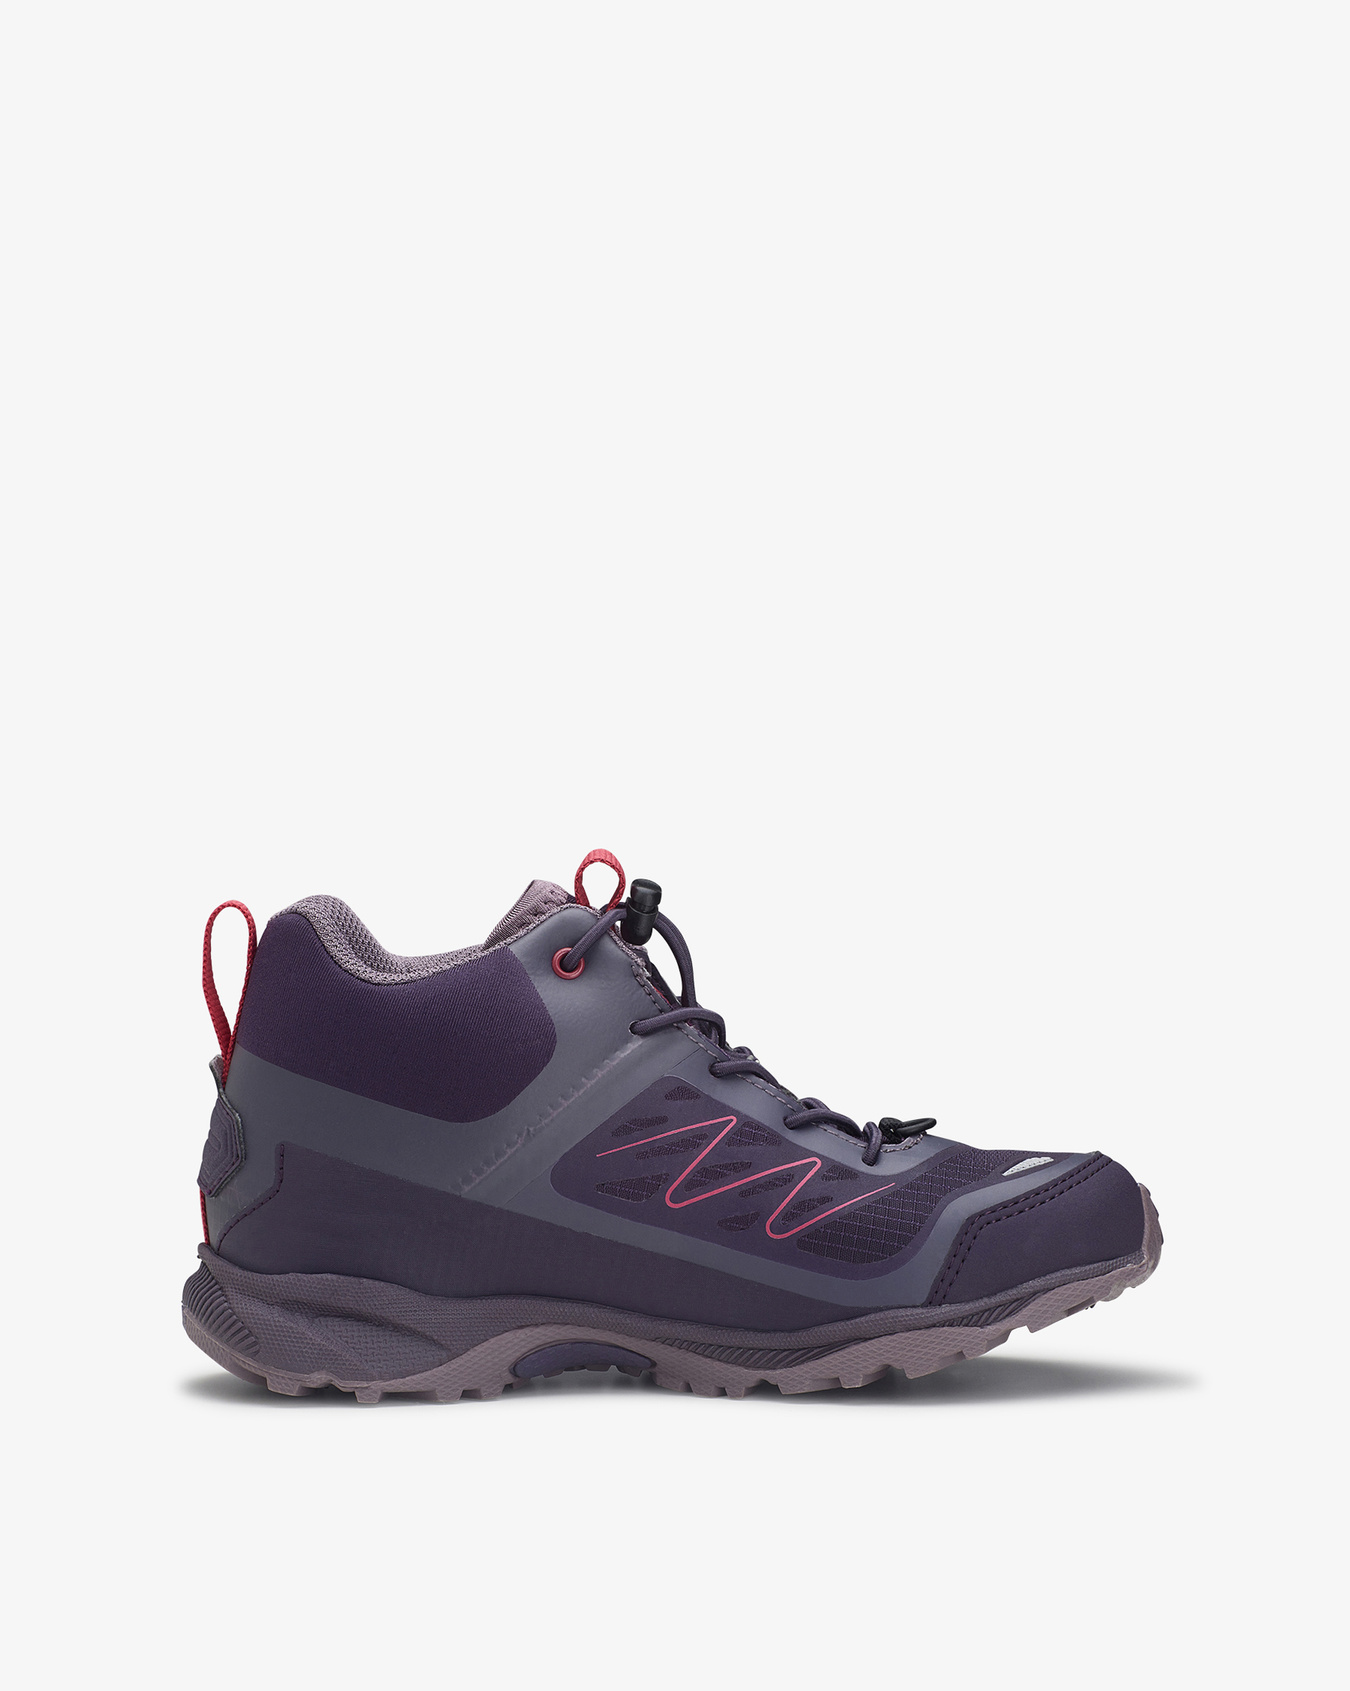 Tind Mid GTX Grey Red Hiking Boots